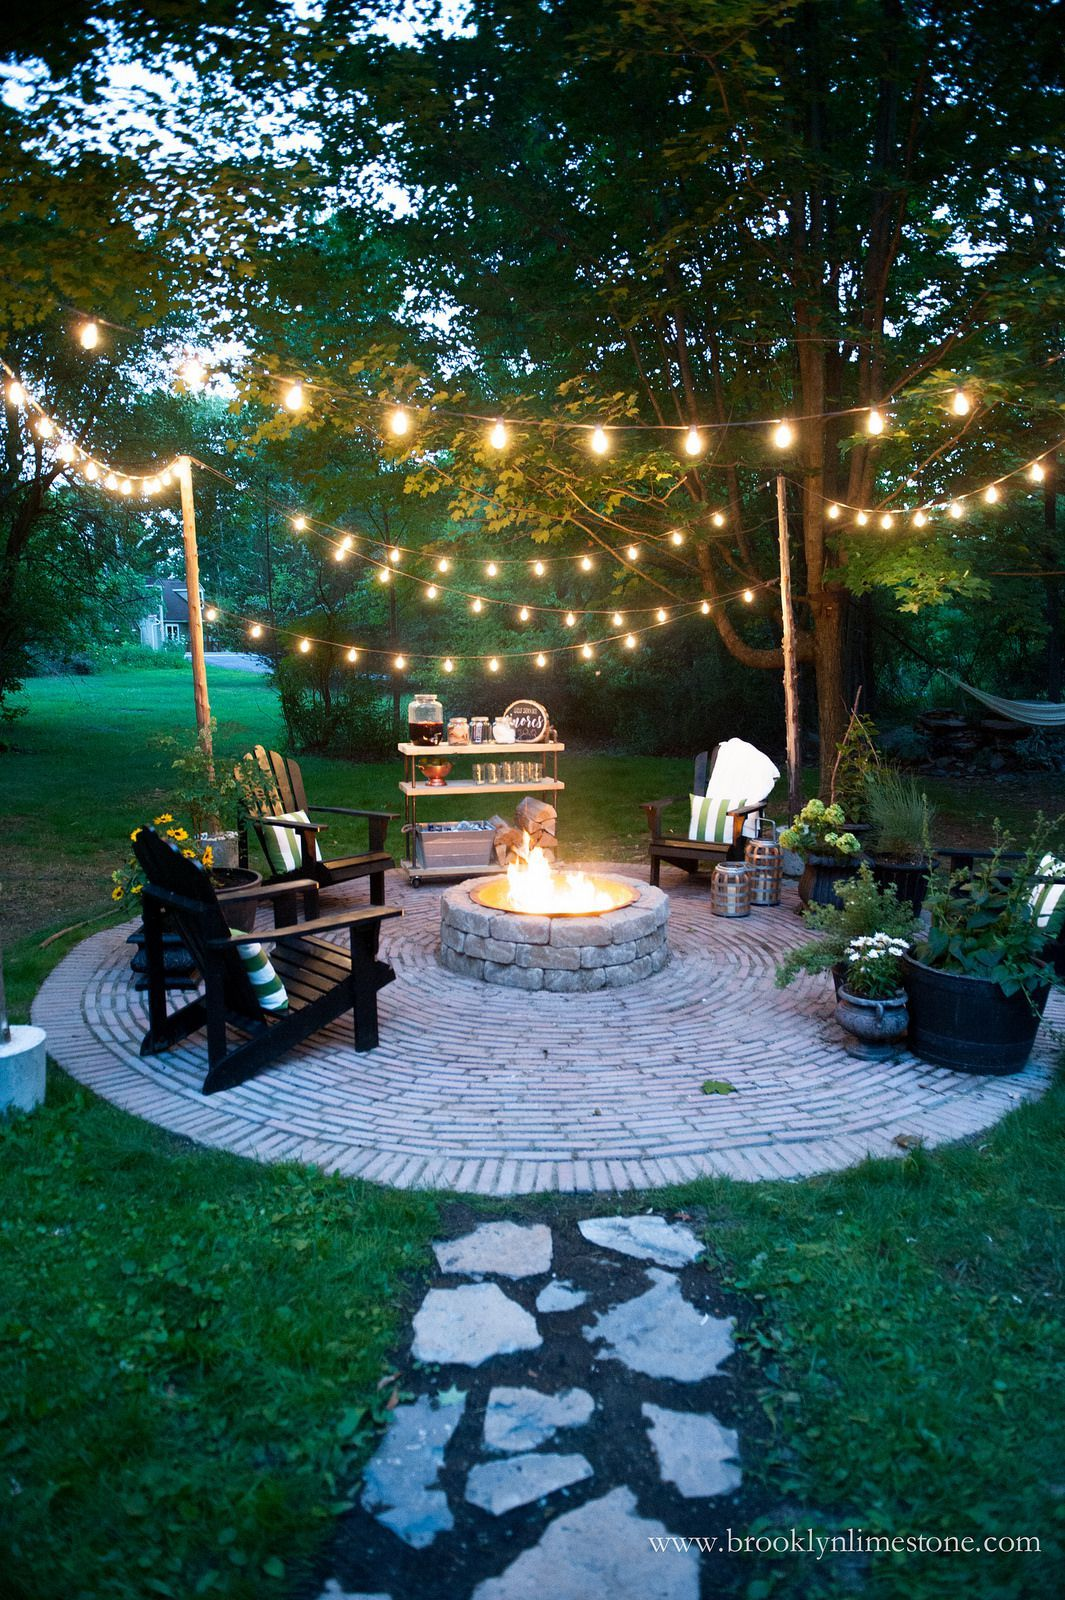 Outdoor String Lighting Ideas Simple 20 Dreamy Ways To Use Outdoor String Lights In Your Backyard